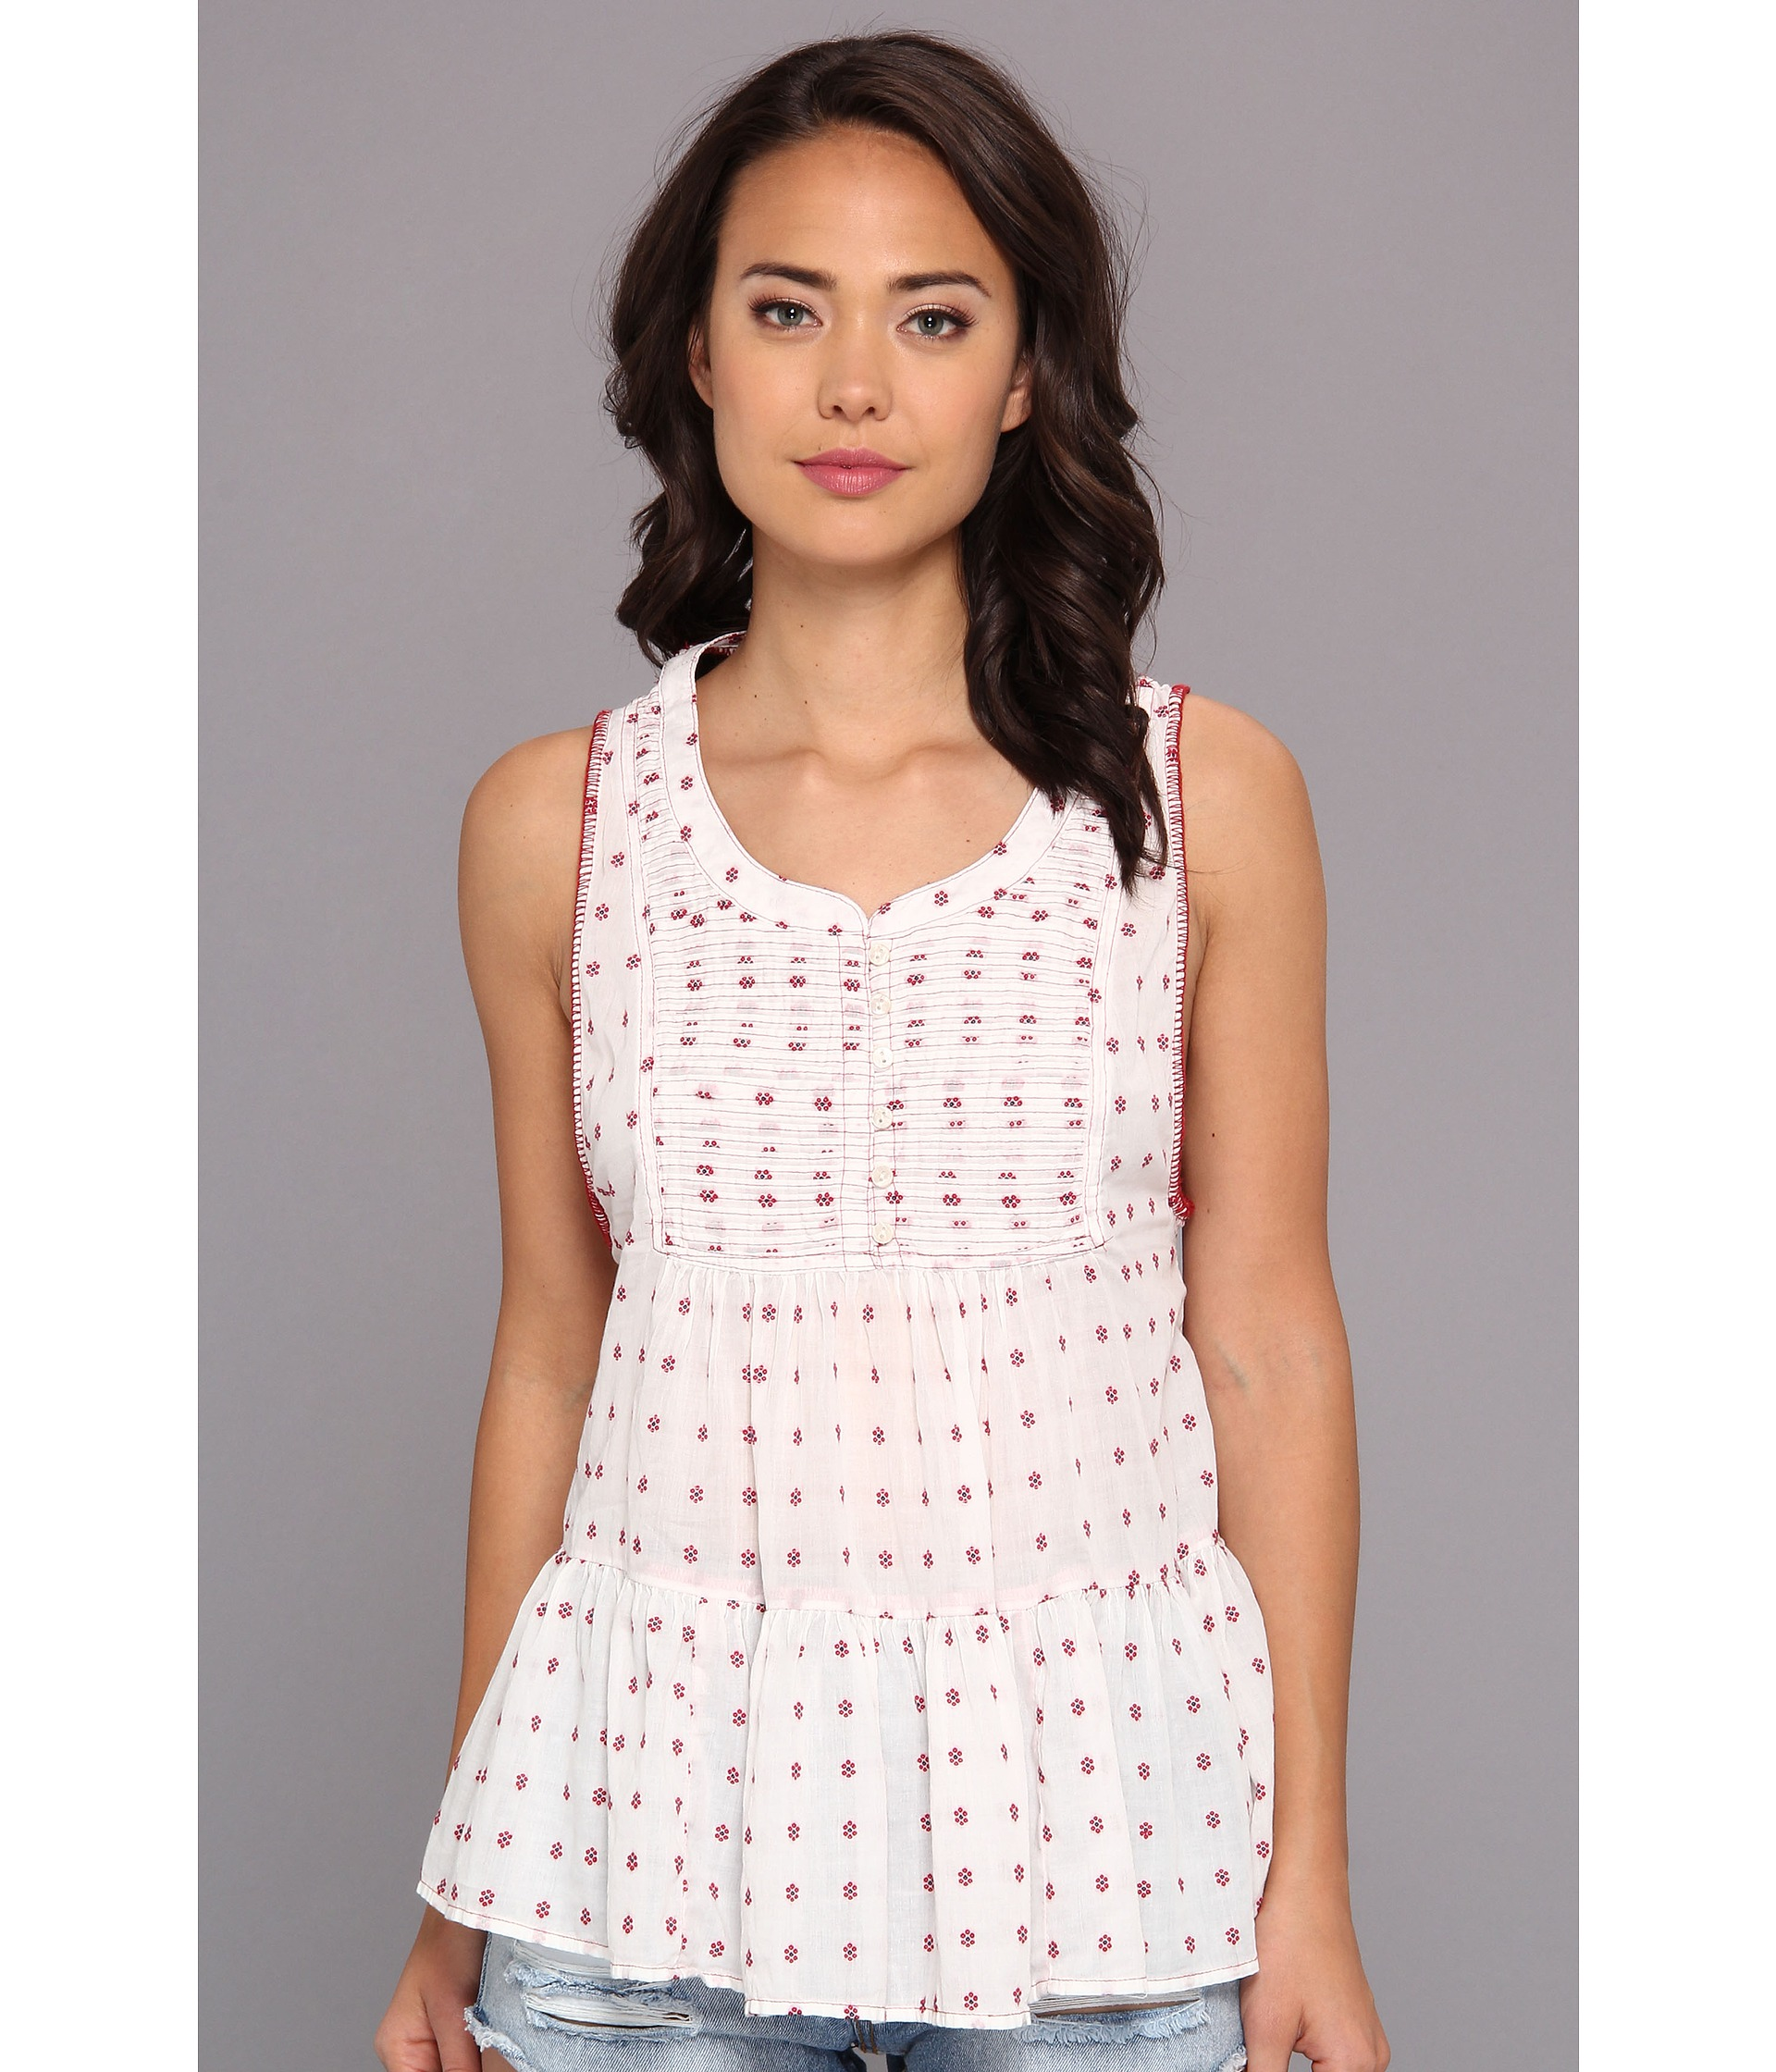 Popular Clothing Store Off Purchase Printable Express These Picture